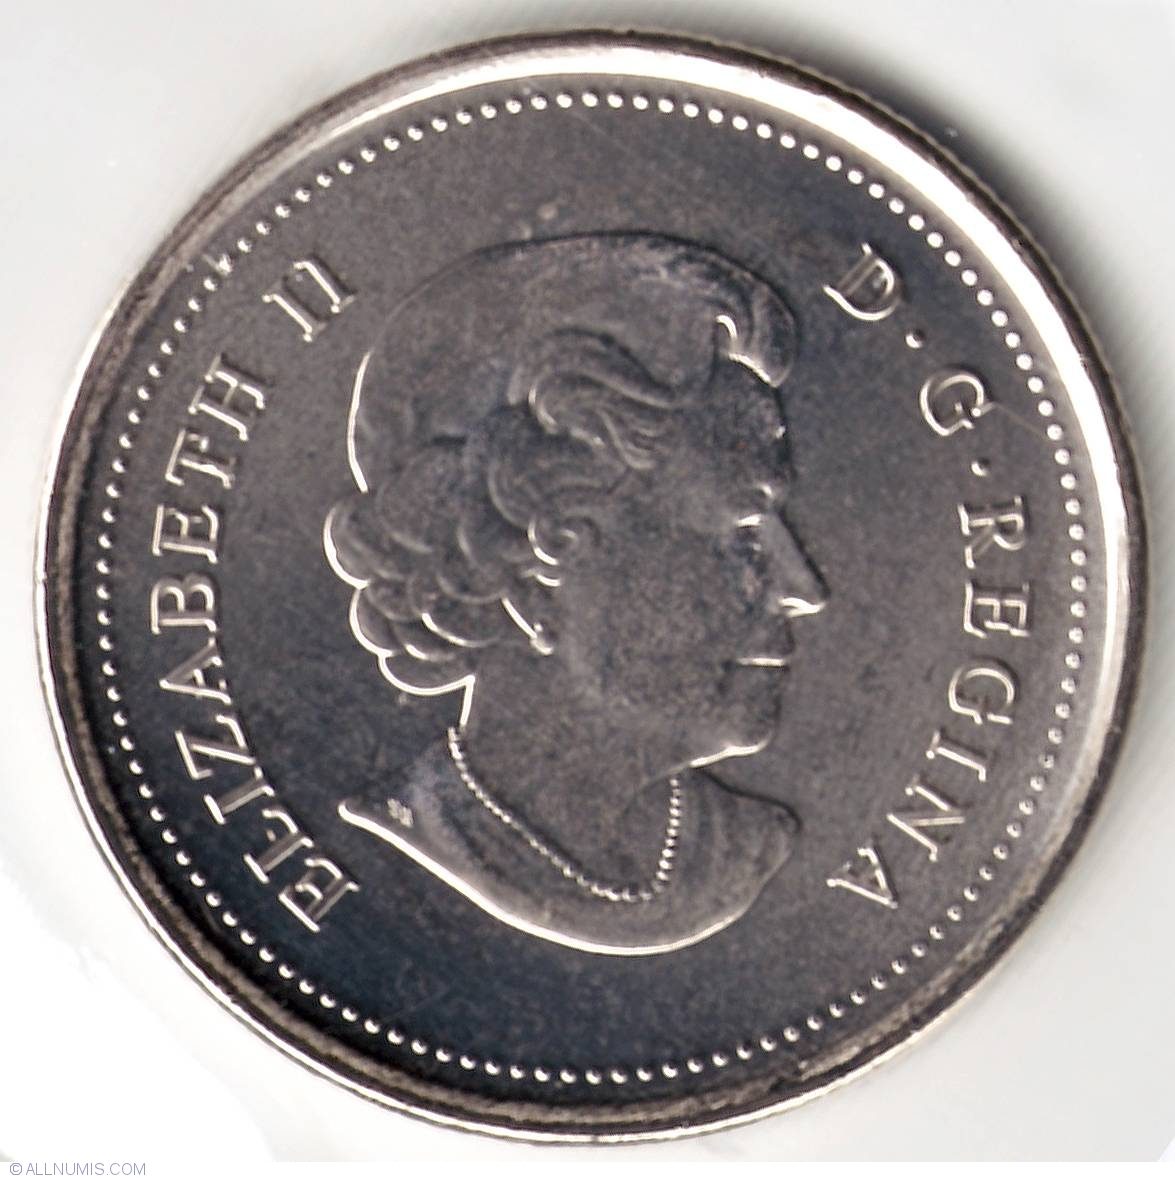 CANADA 25 CENTS QUARTER QEII CANADIAN BISON 2011 COLOR COIN UNC